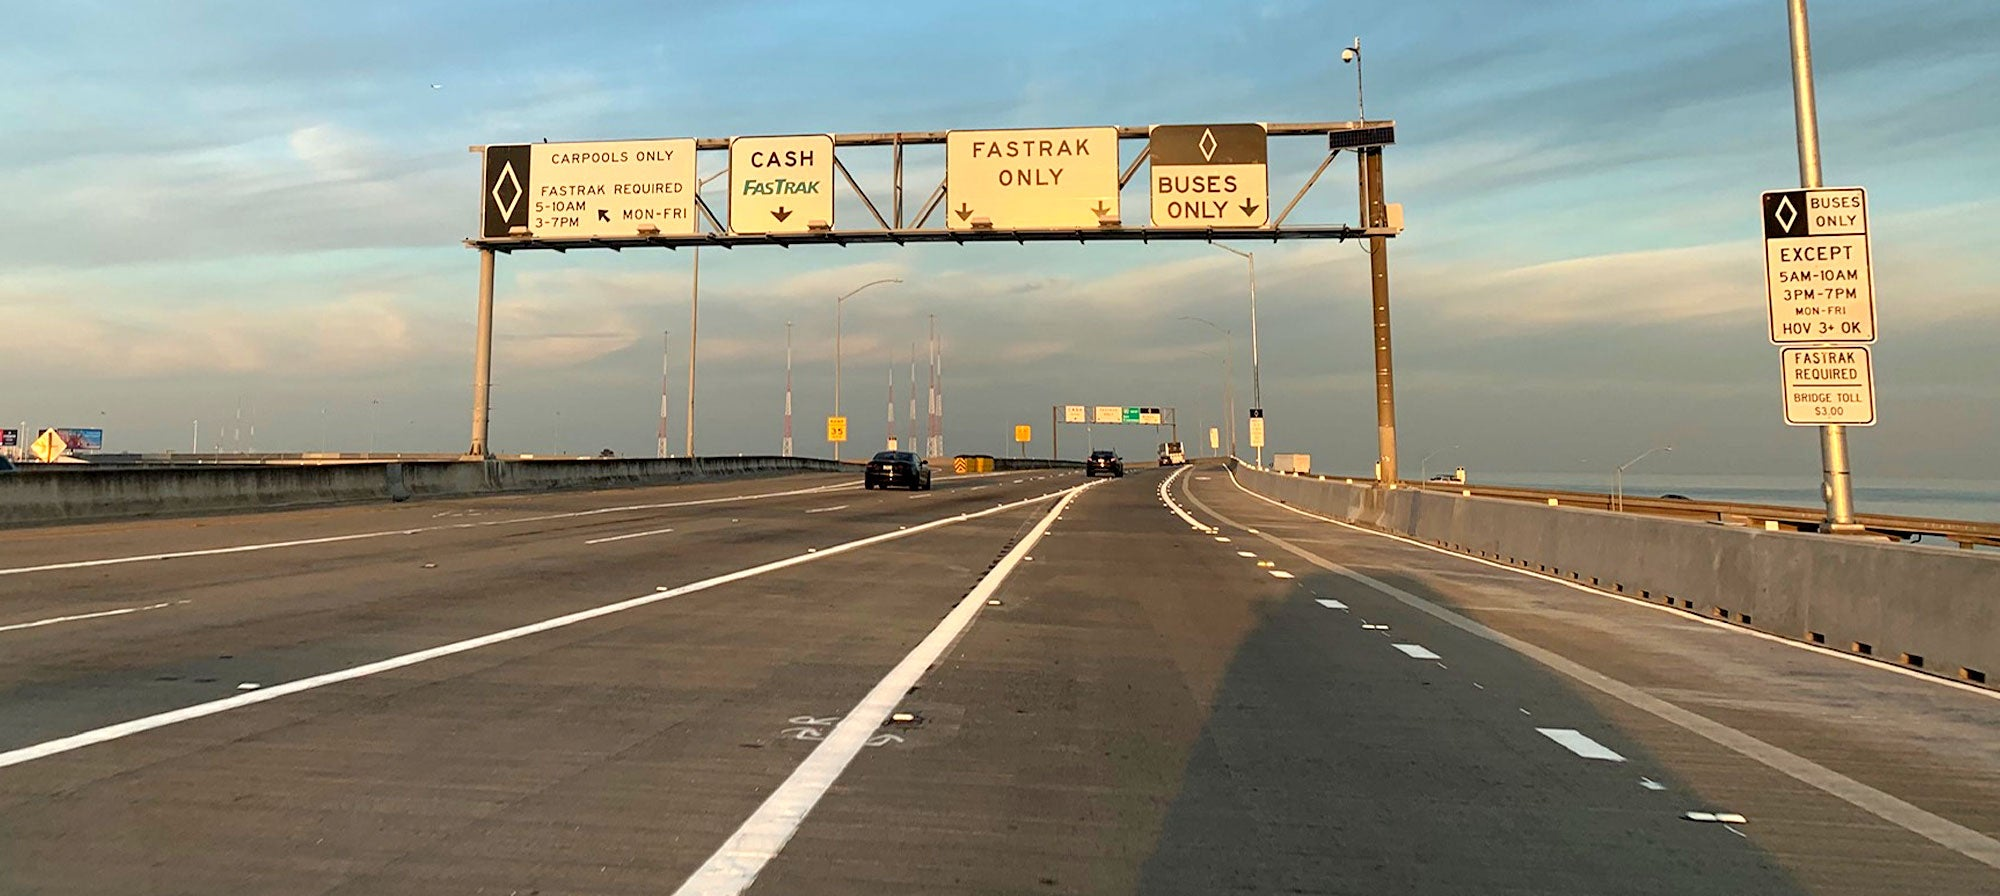 New Bus/Carpool Lane Opens On West Grand Avenue Approach to Bay Bridge